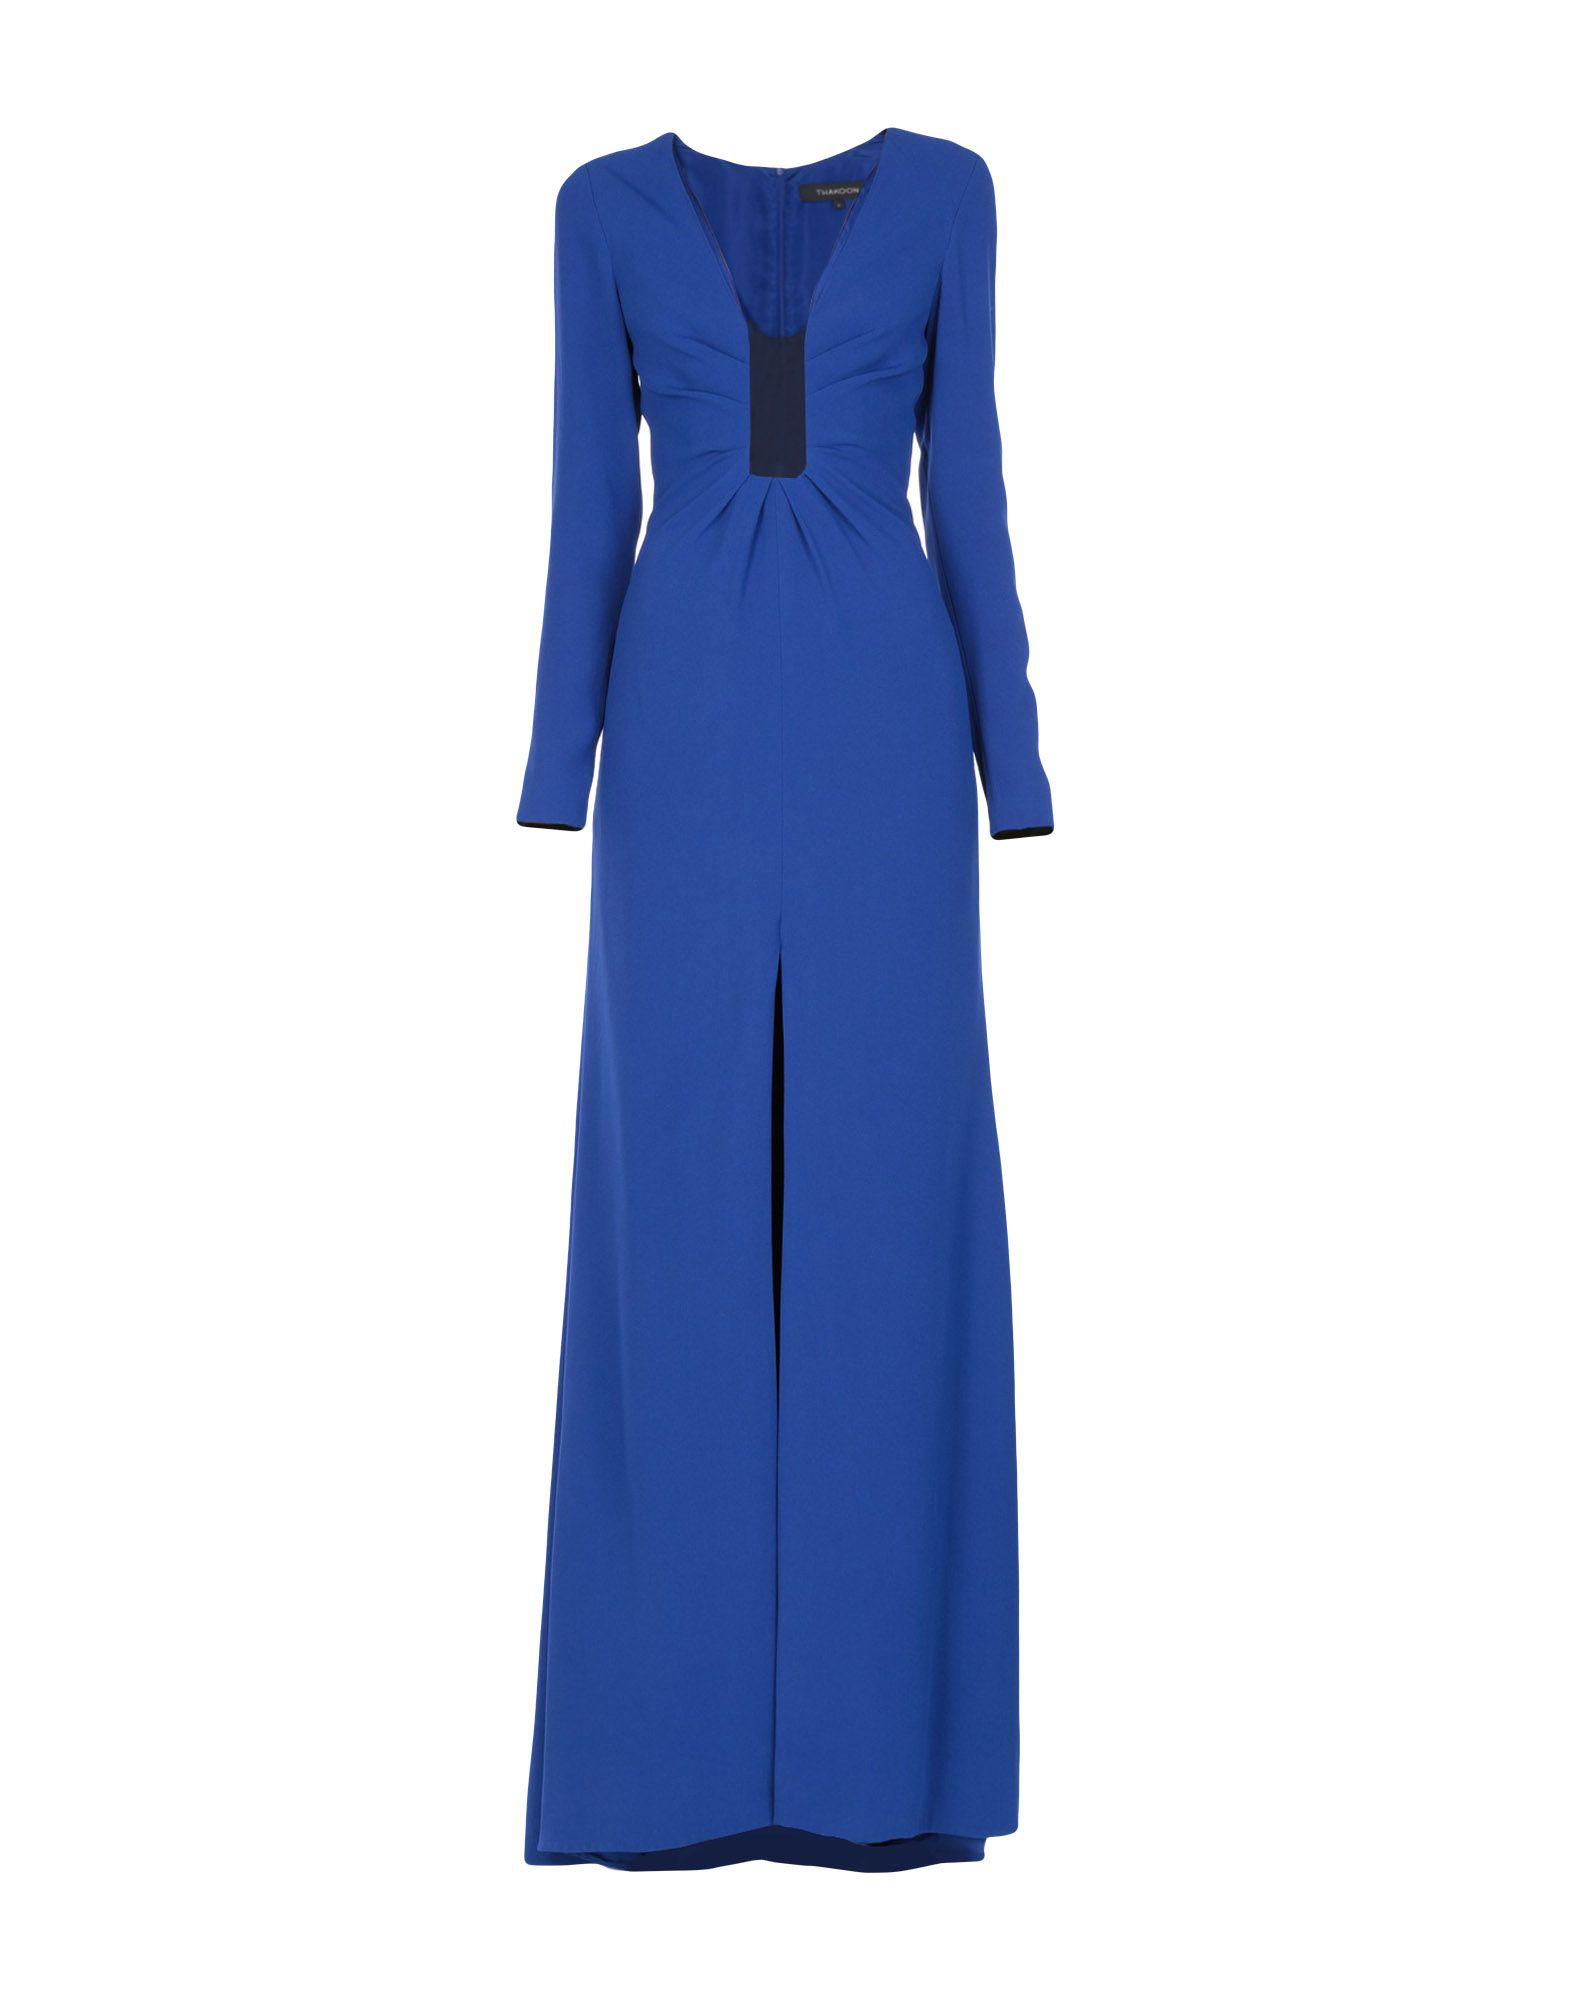 THAKOON Long Dresses in Dark Blue